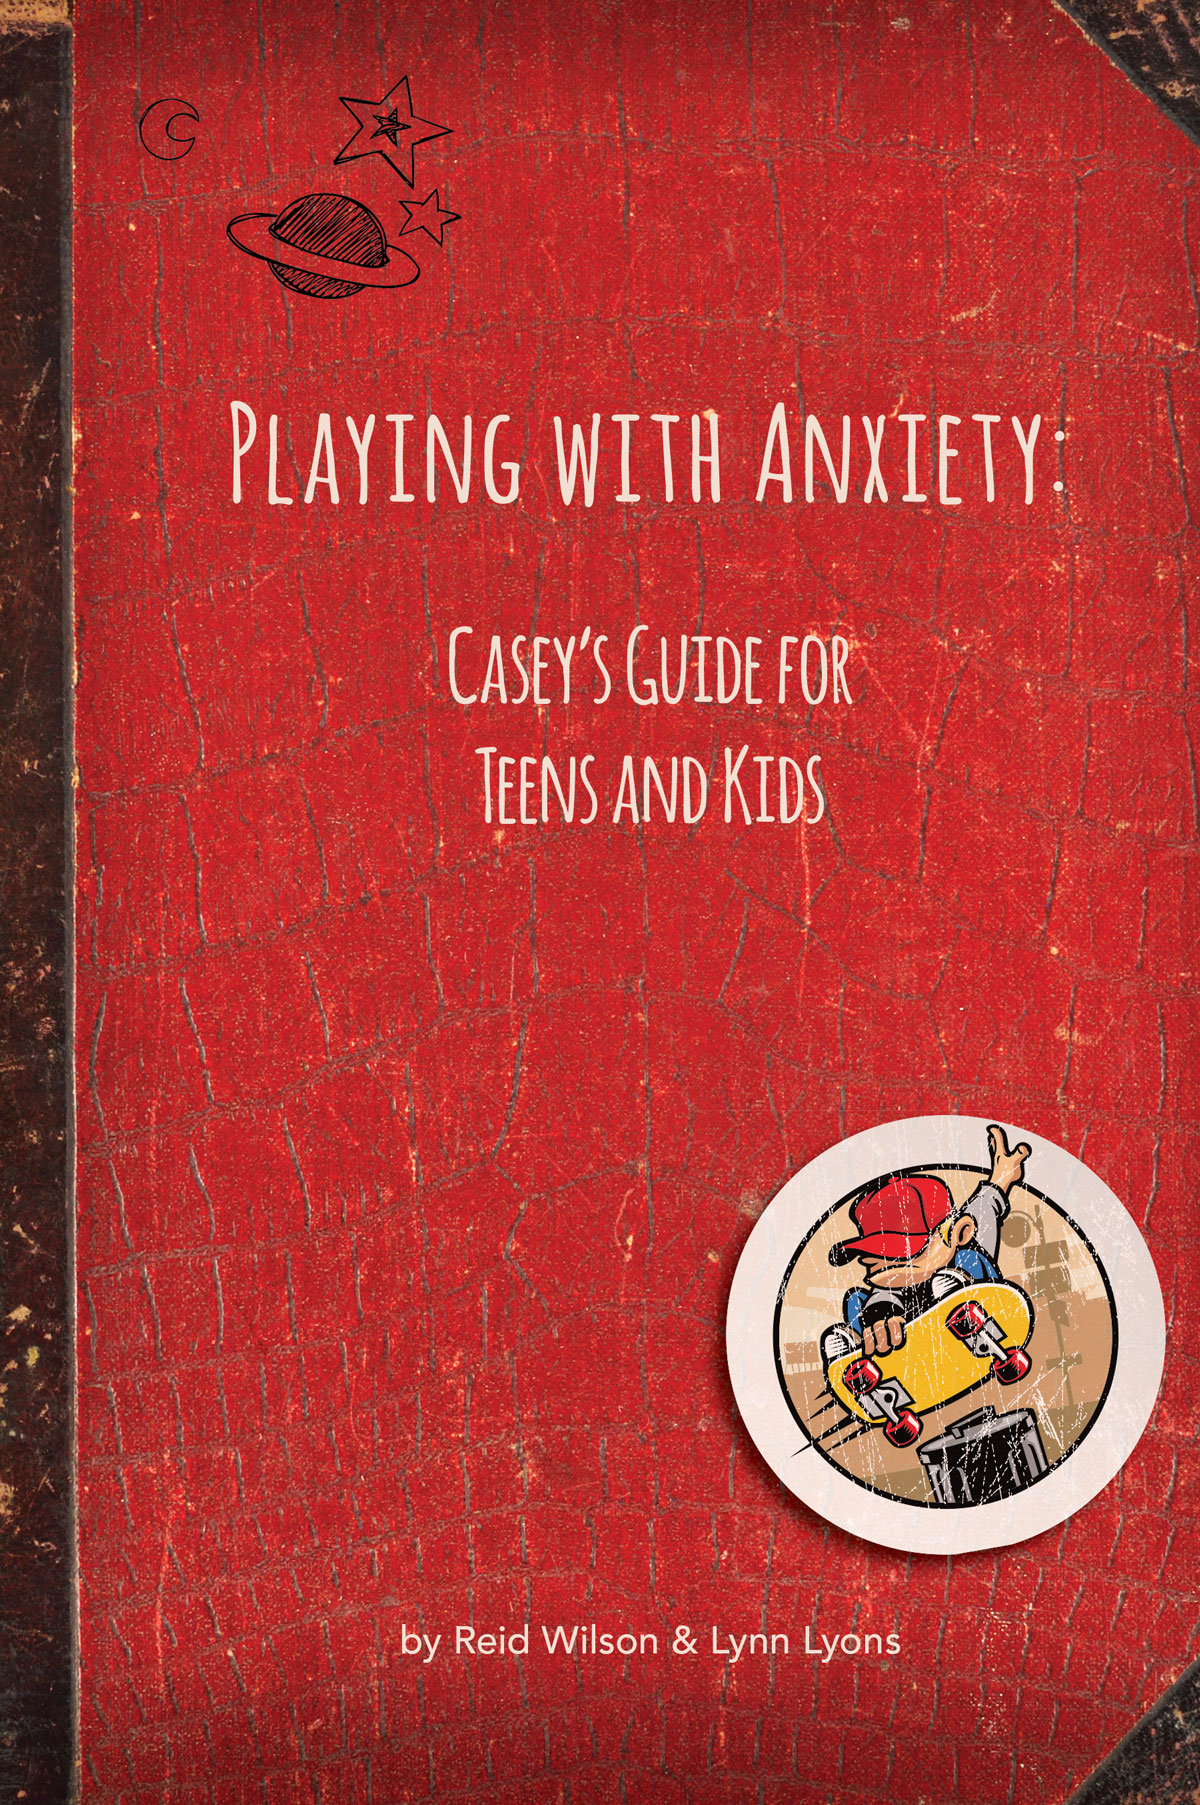 reid-wilson-book-cover-playing-with-anxiety